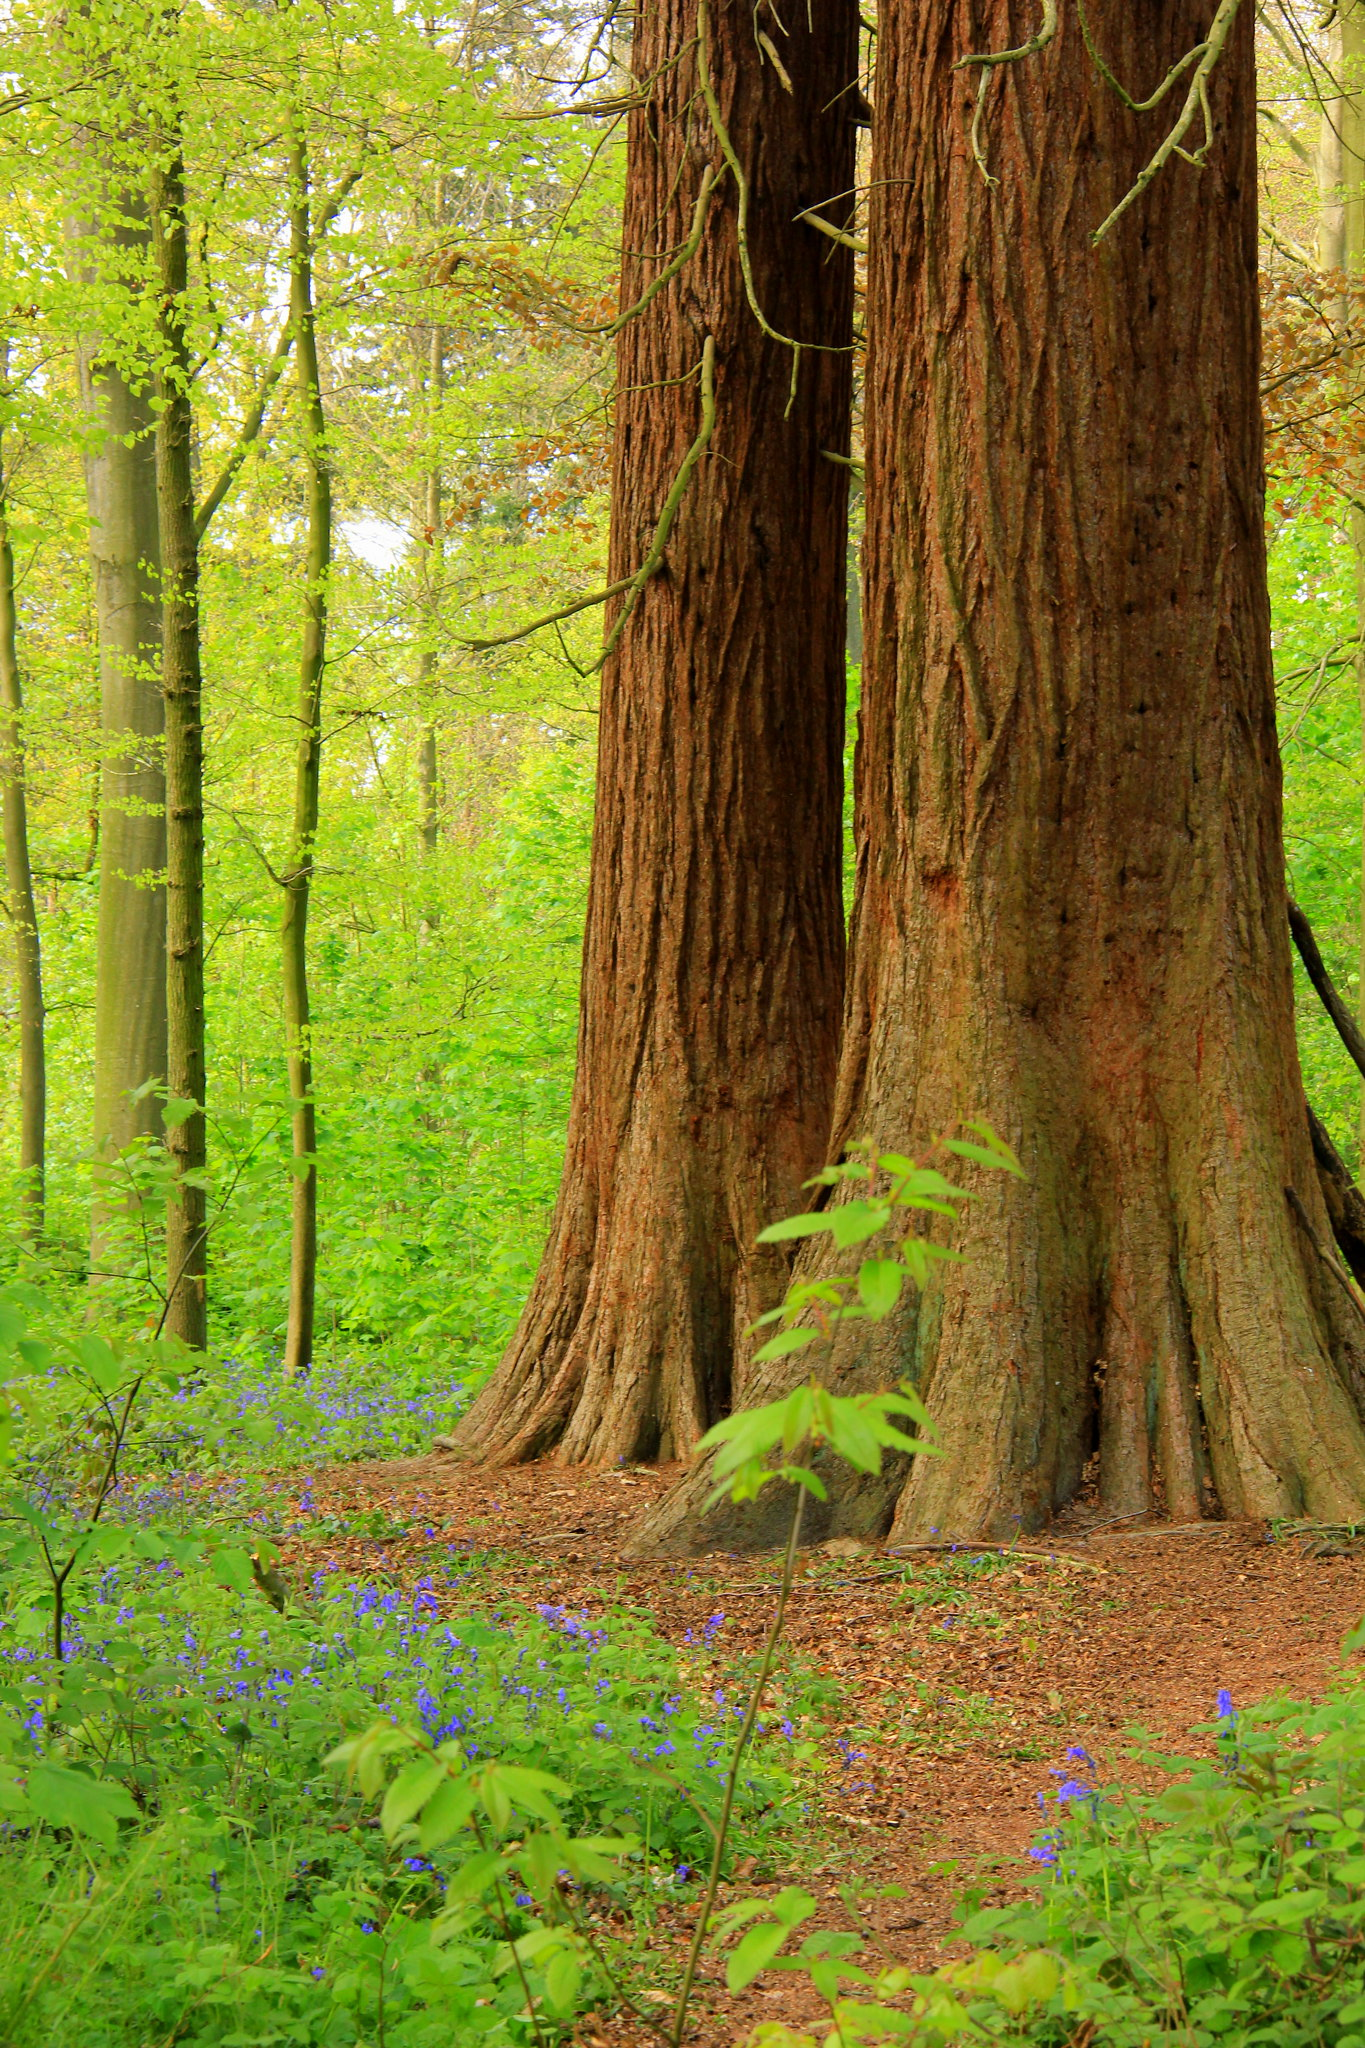 hallerbos has beautiful old trees which were planted after world war ii